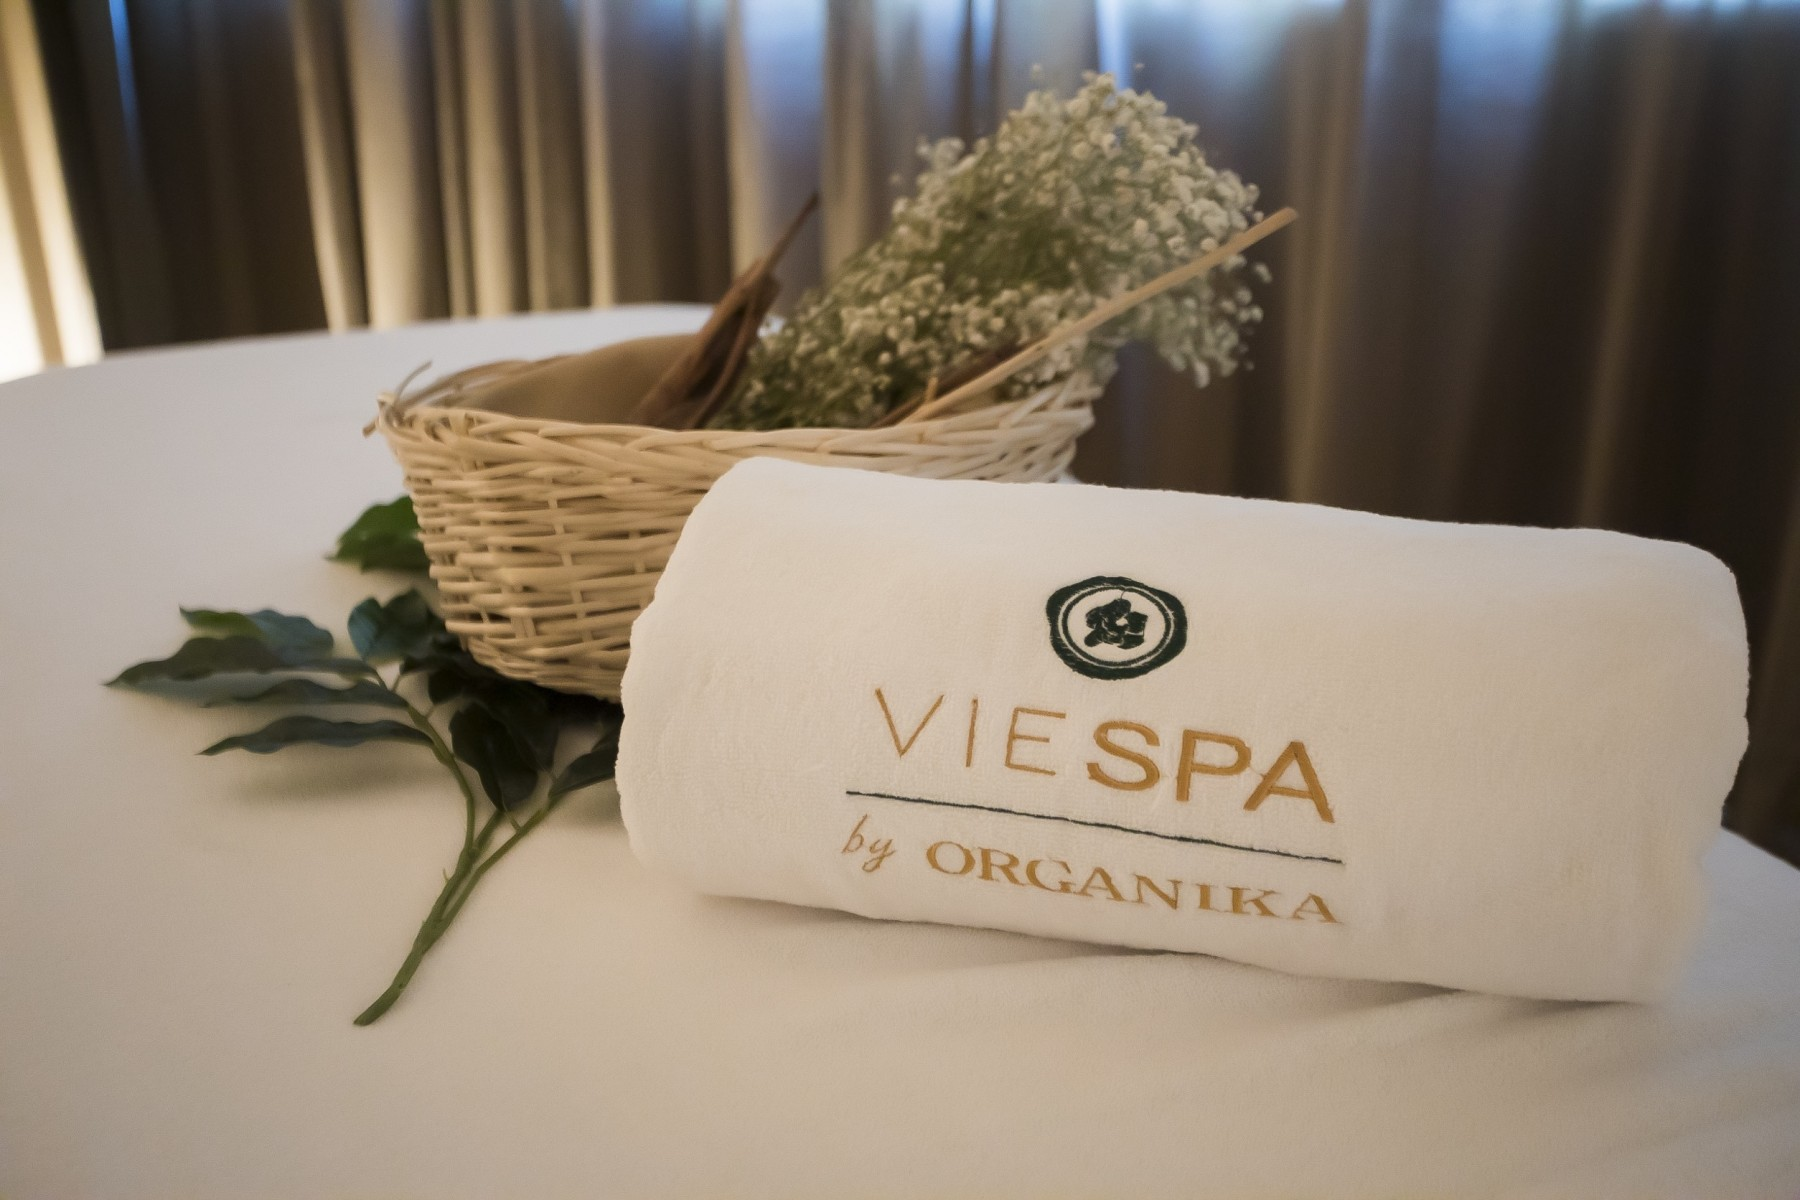 vie-spa-by-organika-a-luxury-spa-experience